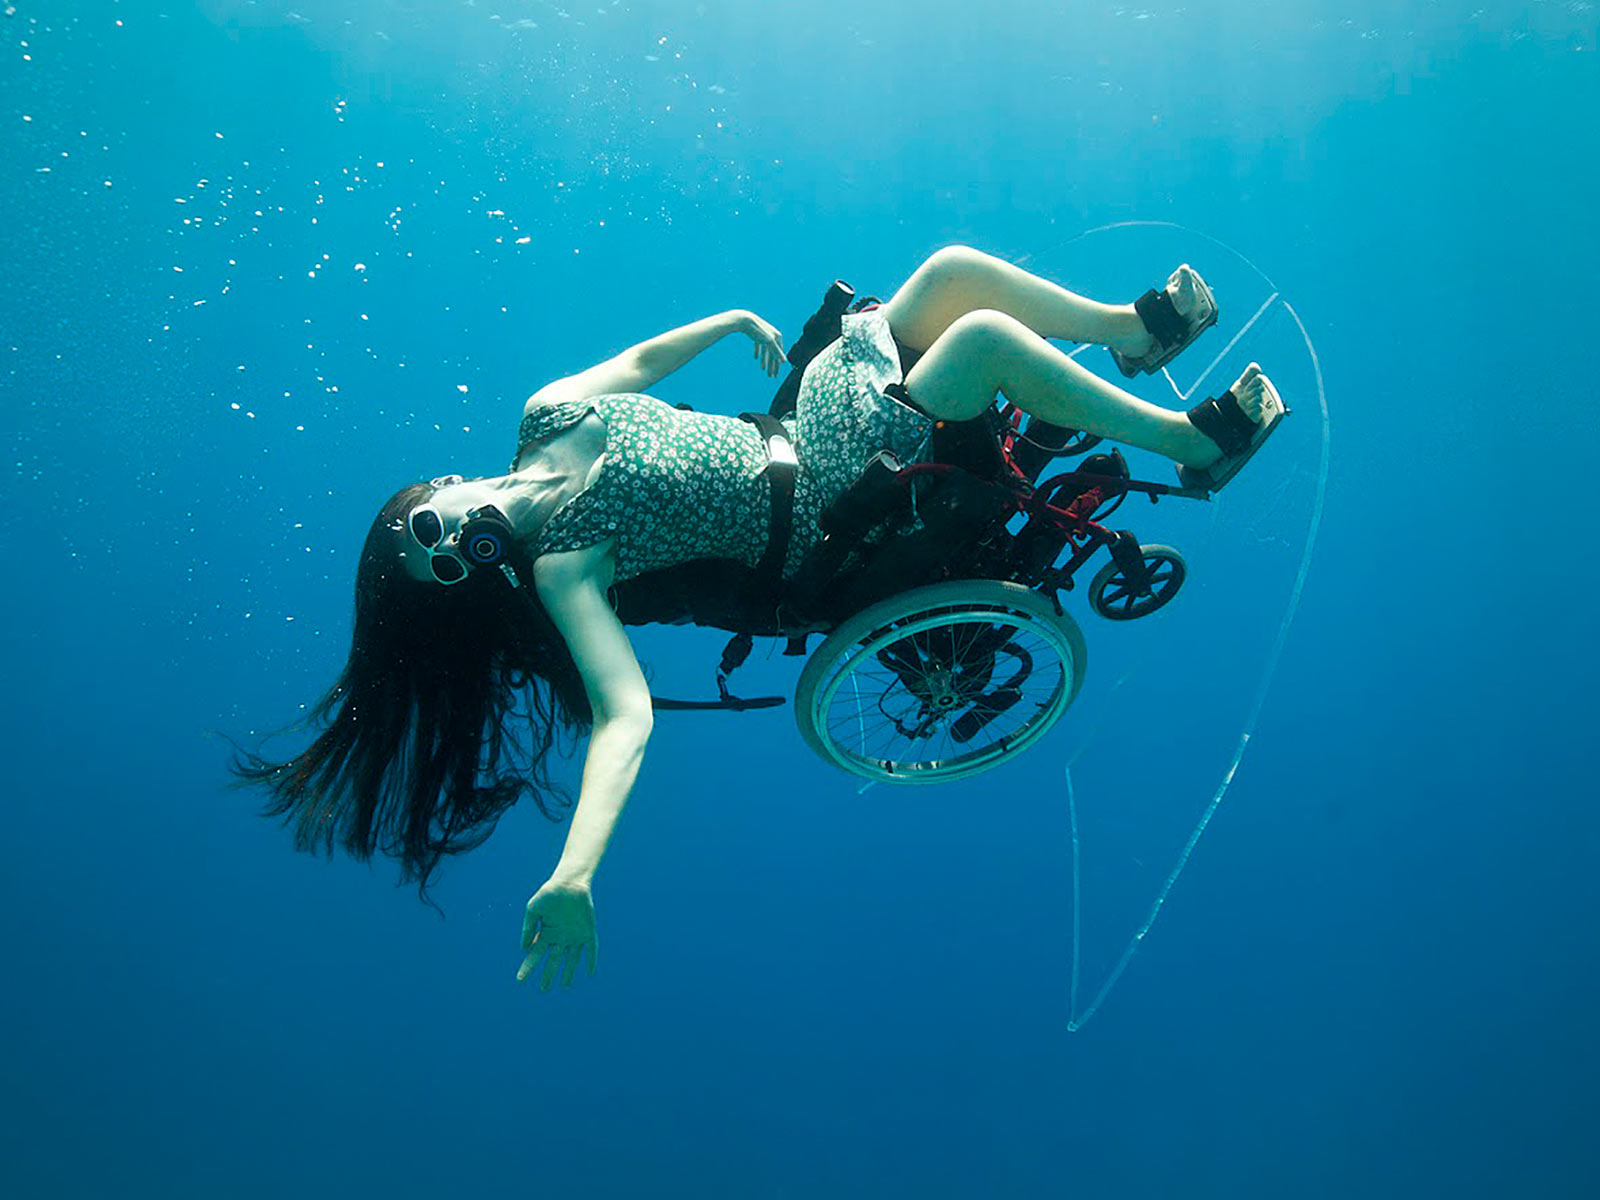 Creating the Spectacle! is a groundbreaking series of live-art and video works by British artist Sue Austin featuring the worlds first underwater wheelchair, which flies along mid-water in a dramatic demonstration of the joy and freedom it brings.